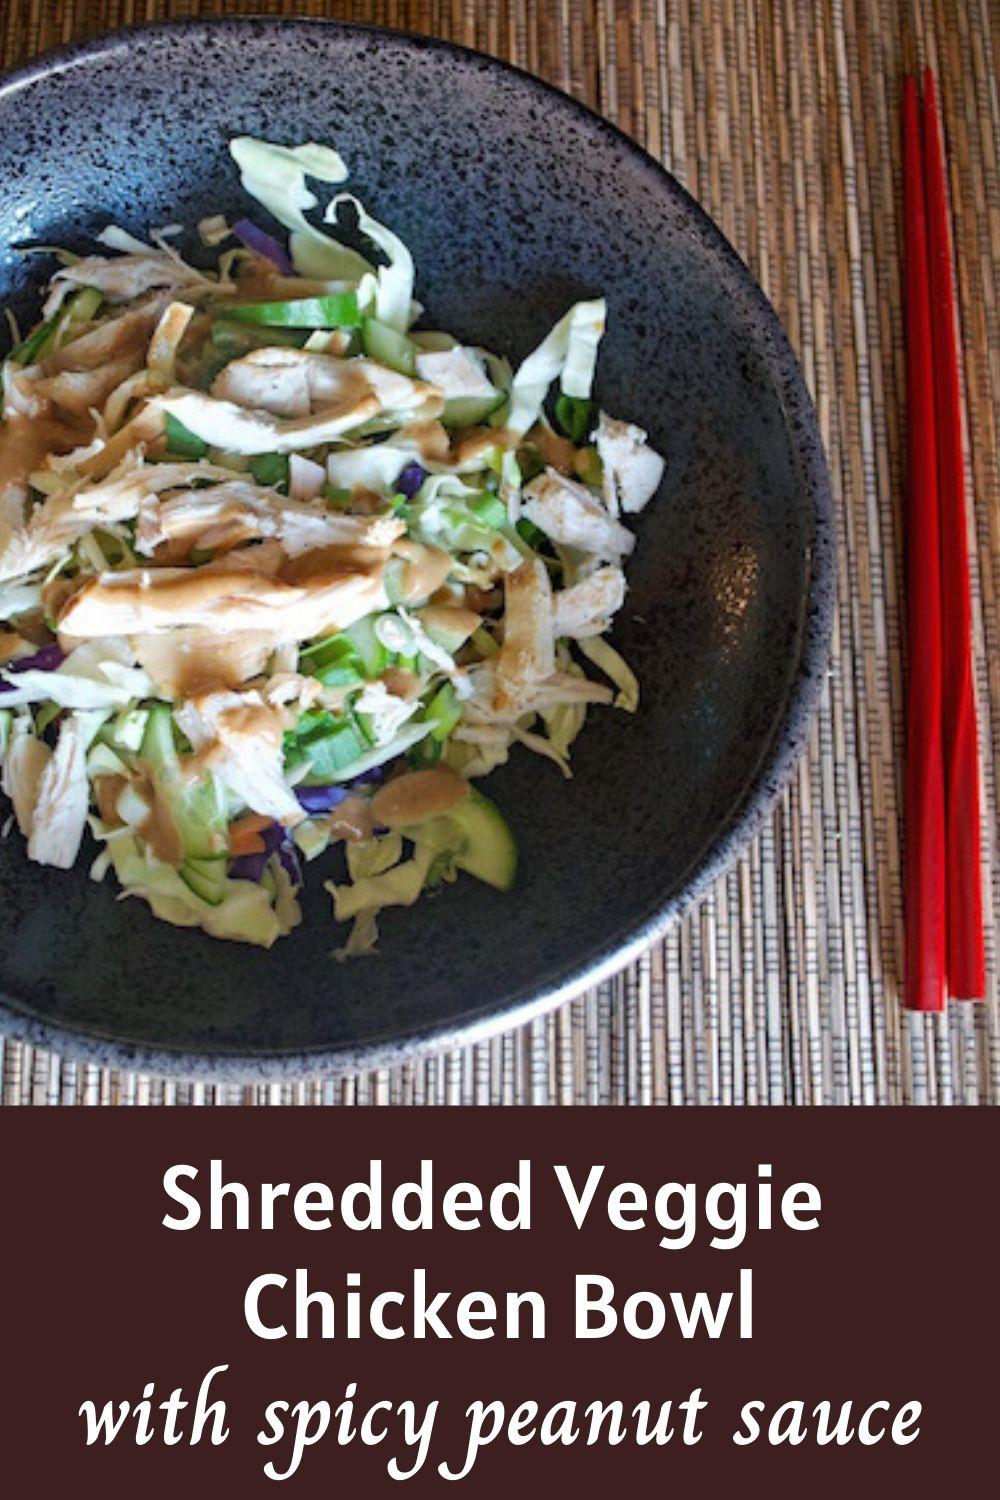 Shredded Veggie Chicken Bowl with spicy peanut sauce